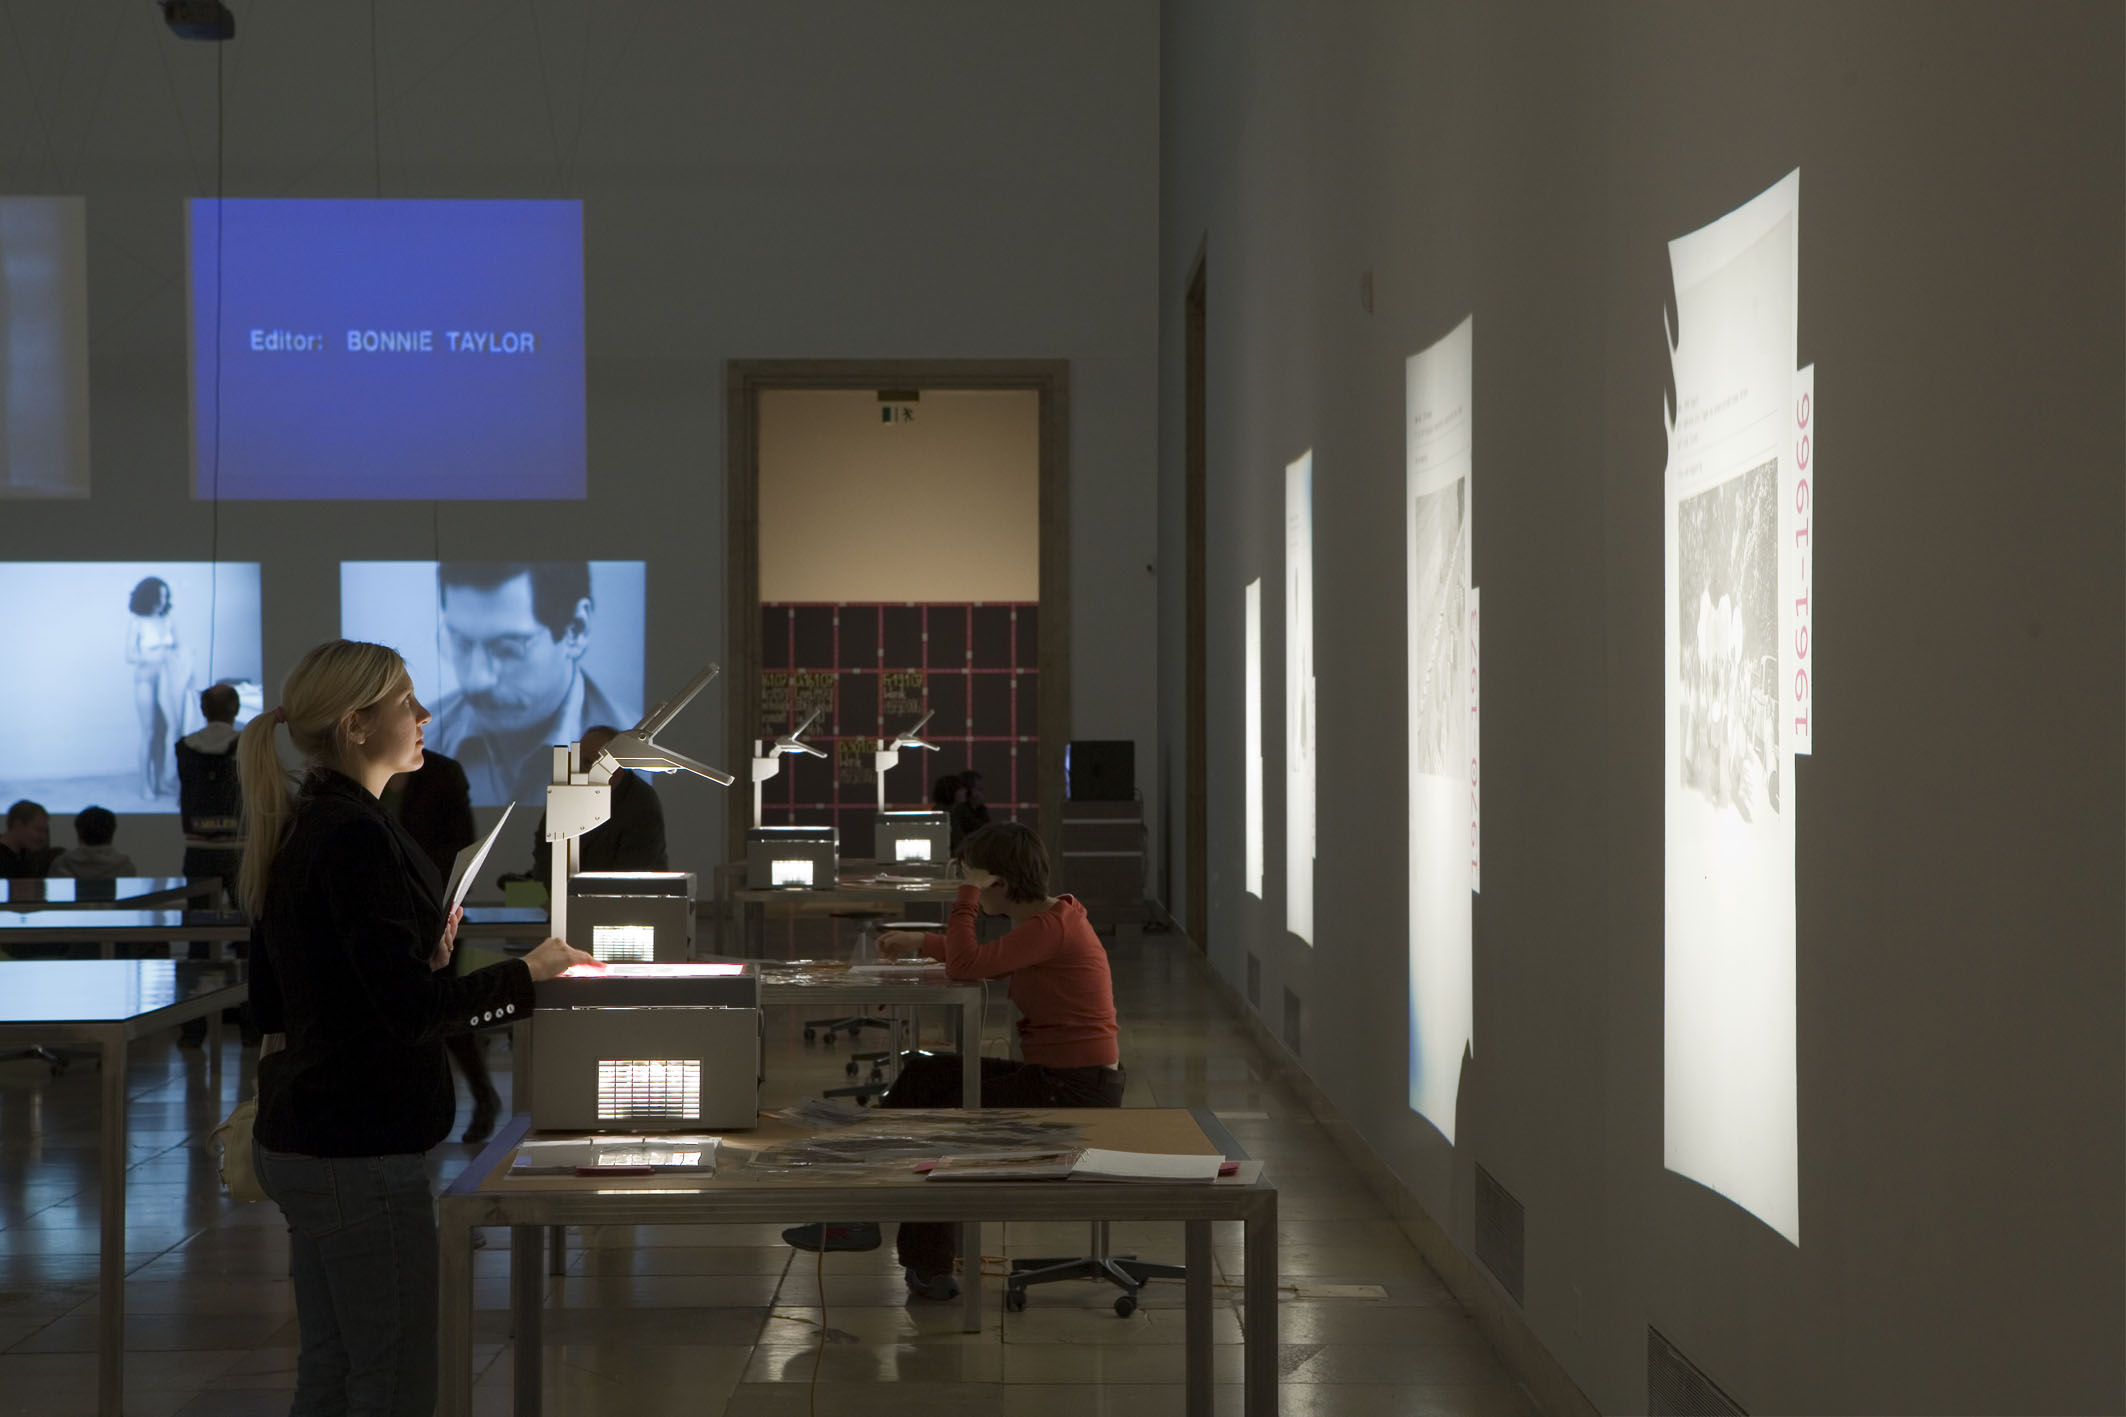 - overhead-projectors-and-projections